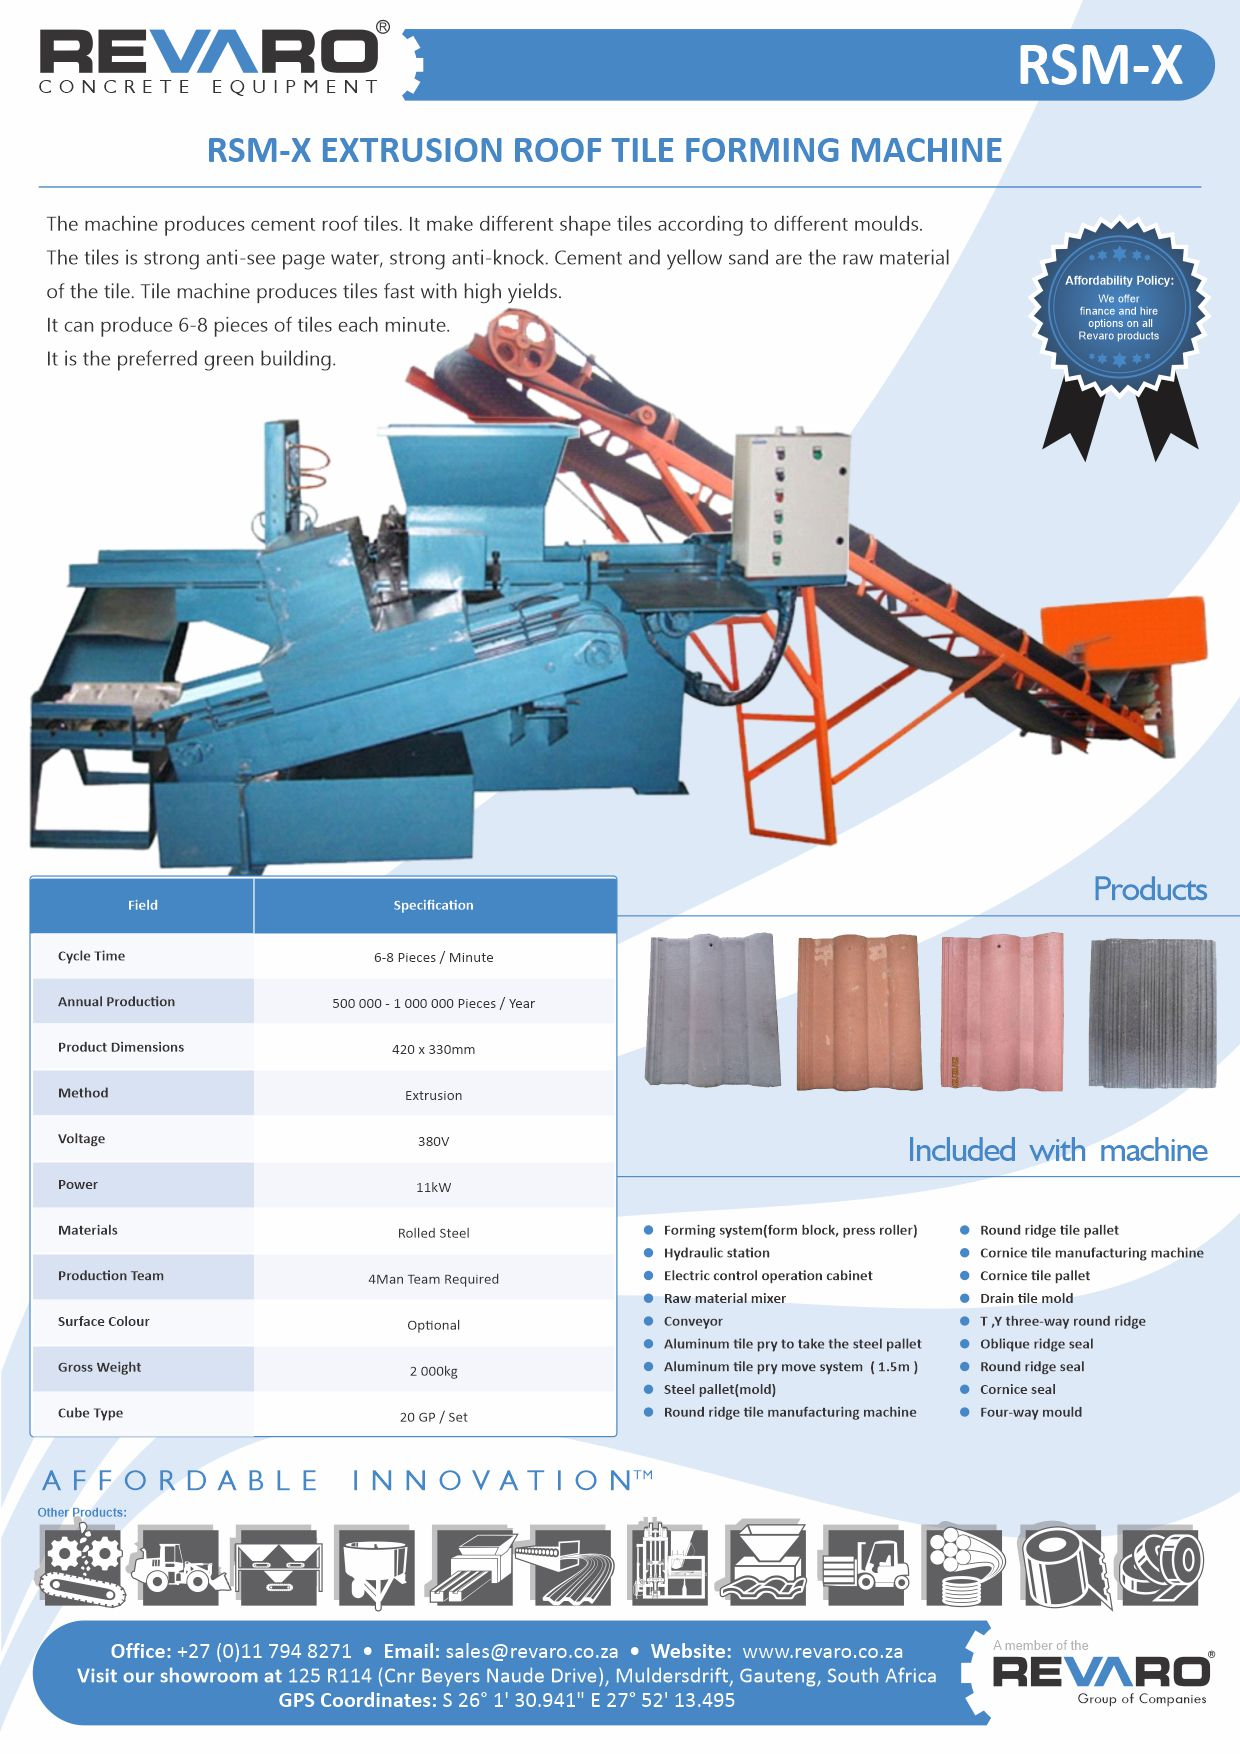 Roof tile machine with capacity of 4000 tiles per 8 hour shift Affordable and profitable